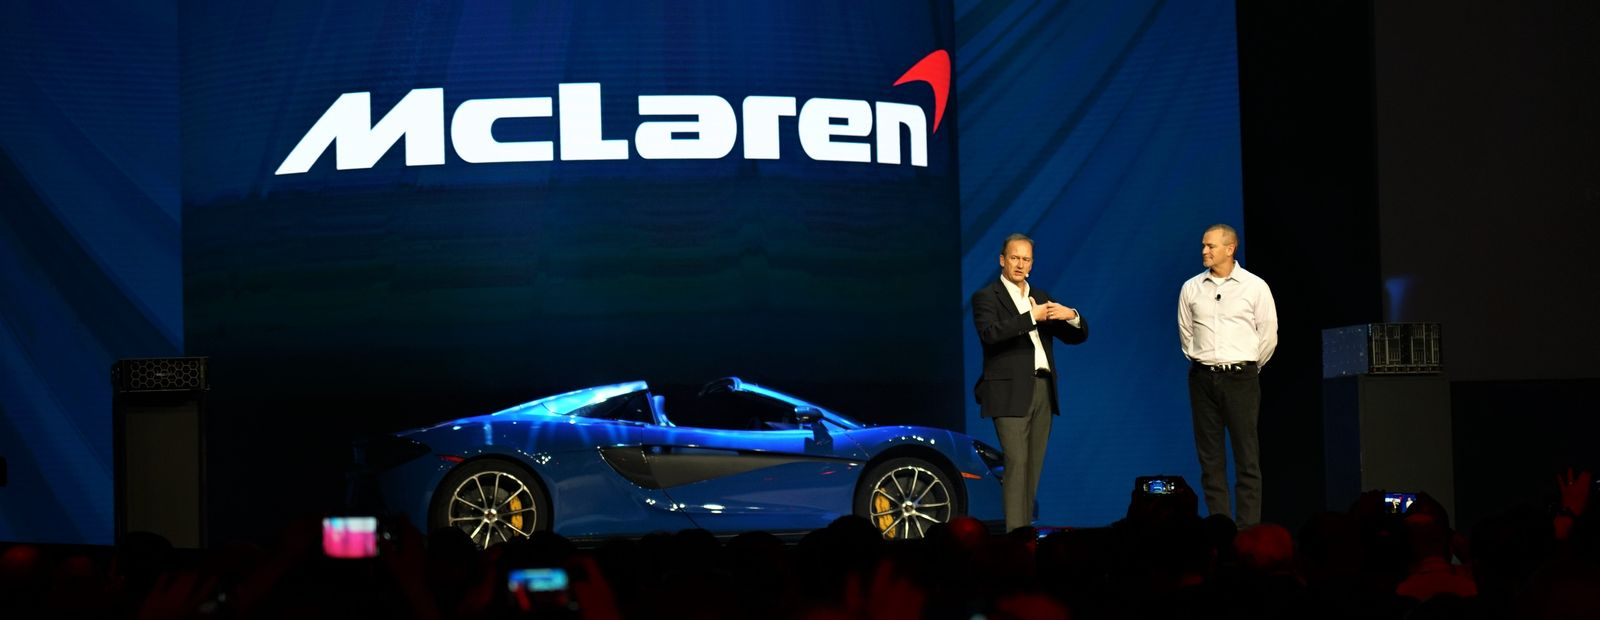 McLaren at Dell Tech World